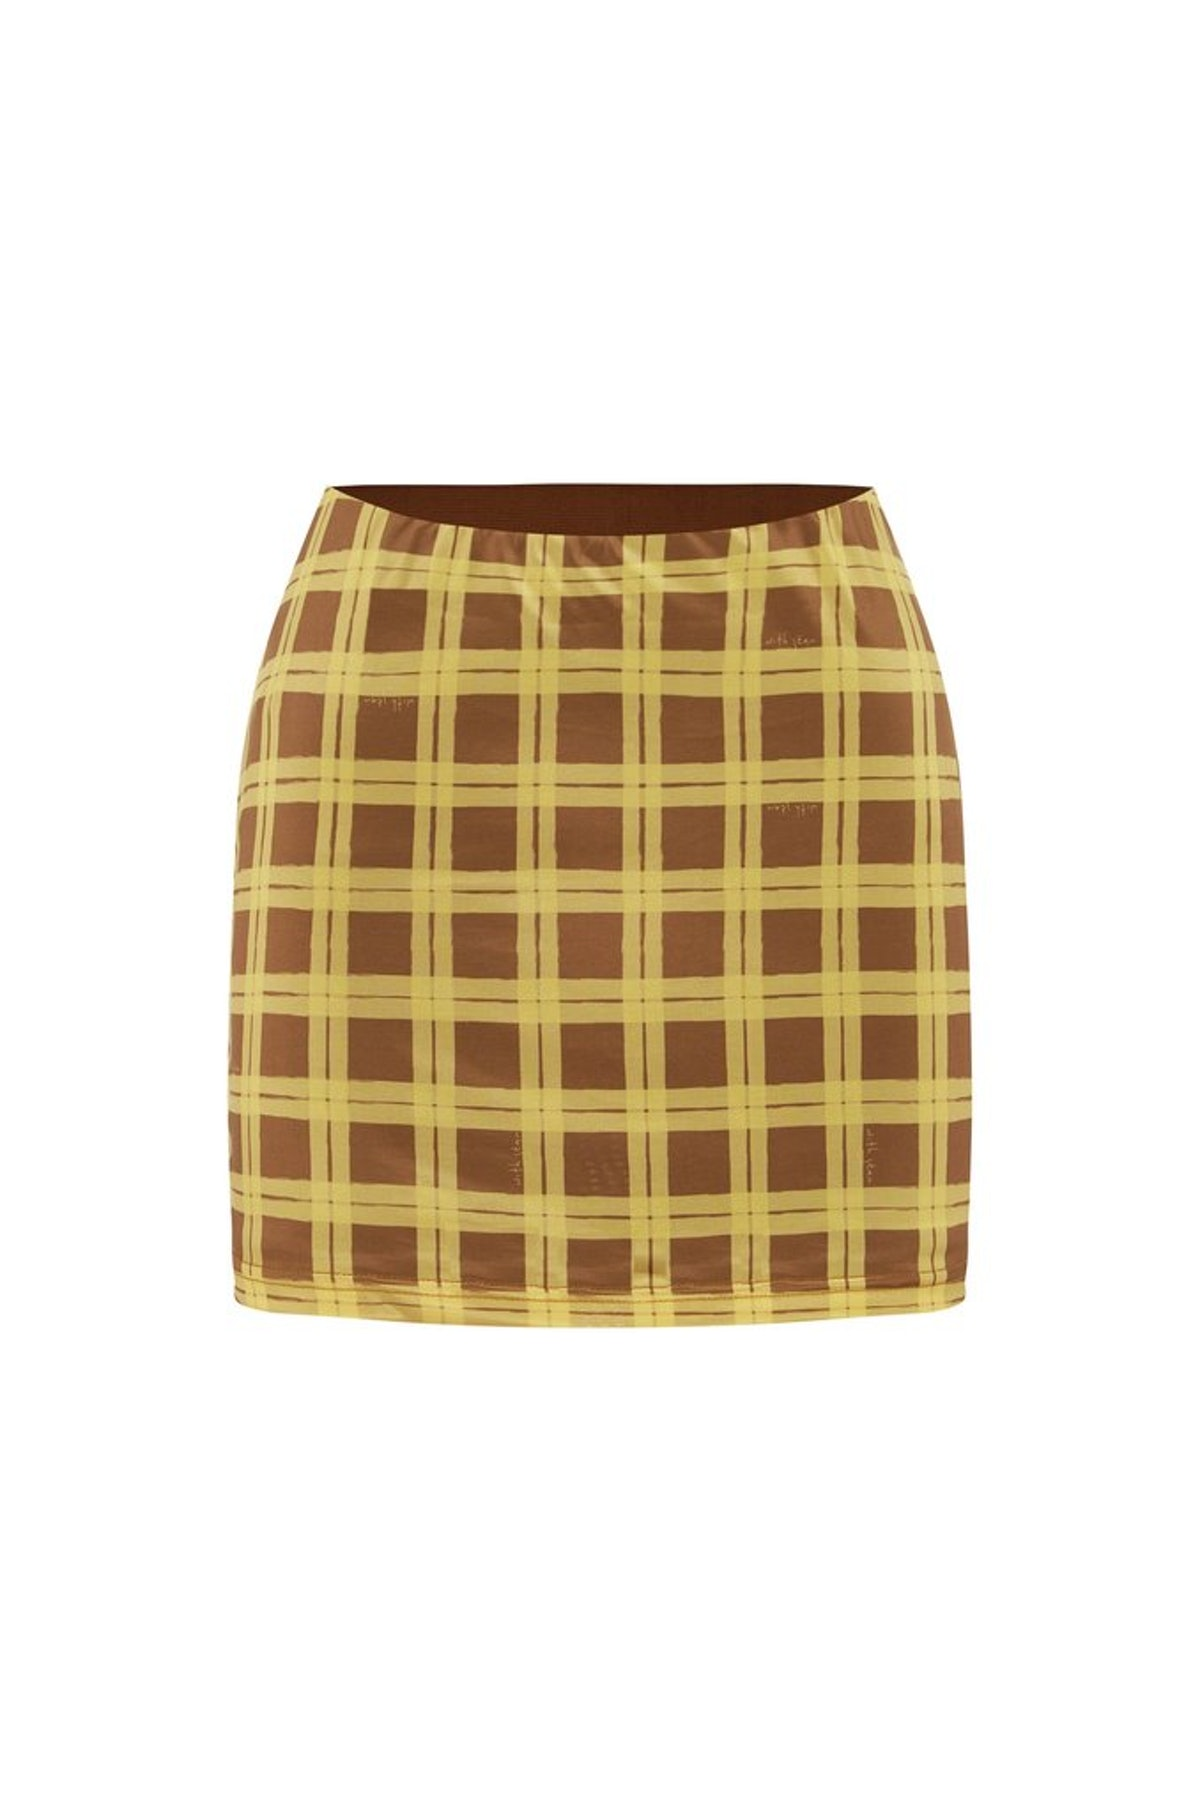 With Jéan Miles mini skirt in checkered Cher print.